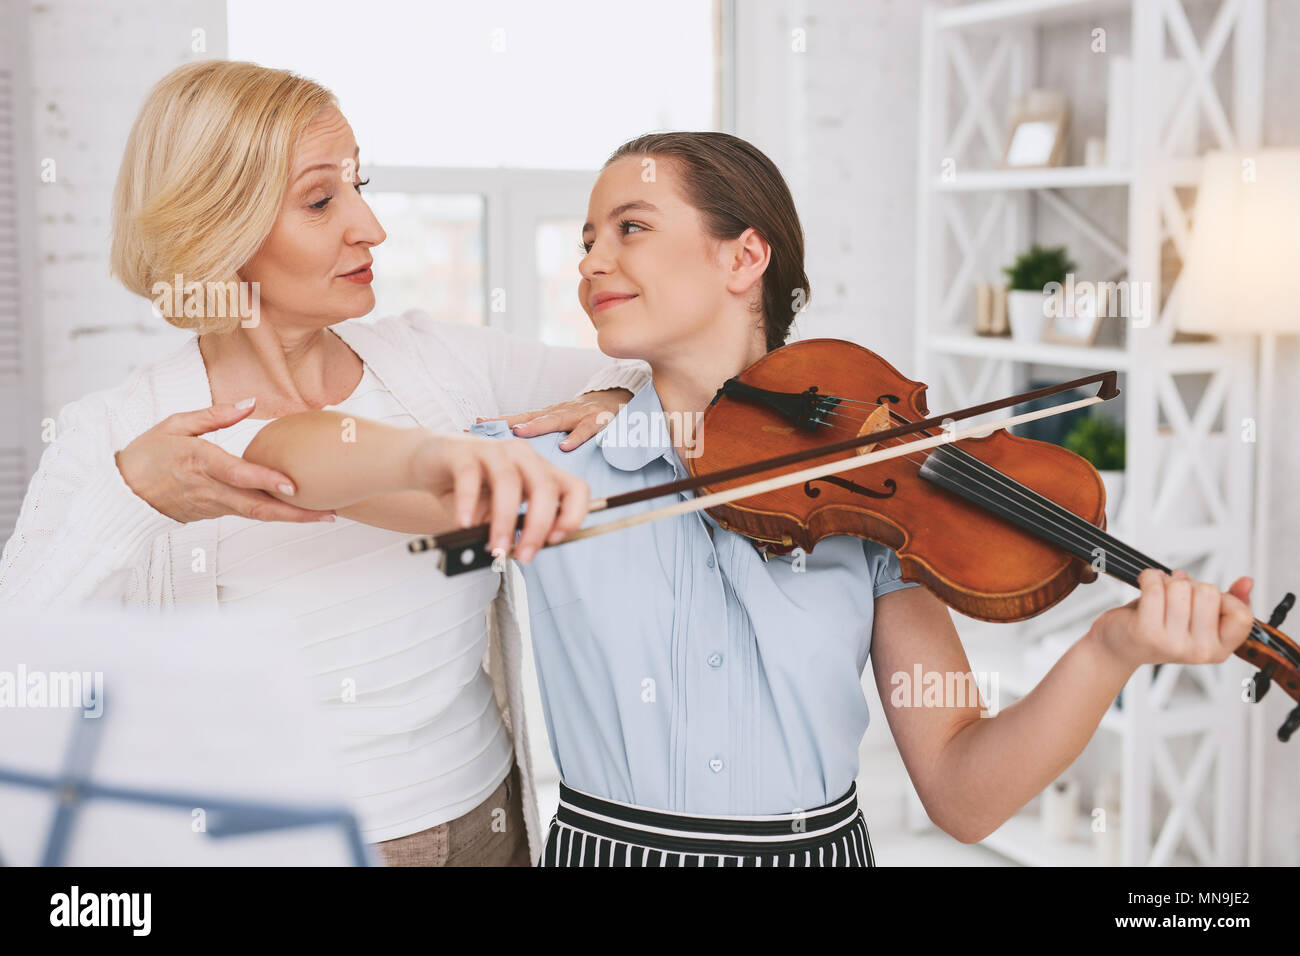 Attentive woman helping her student - Stock Image